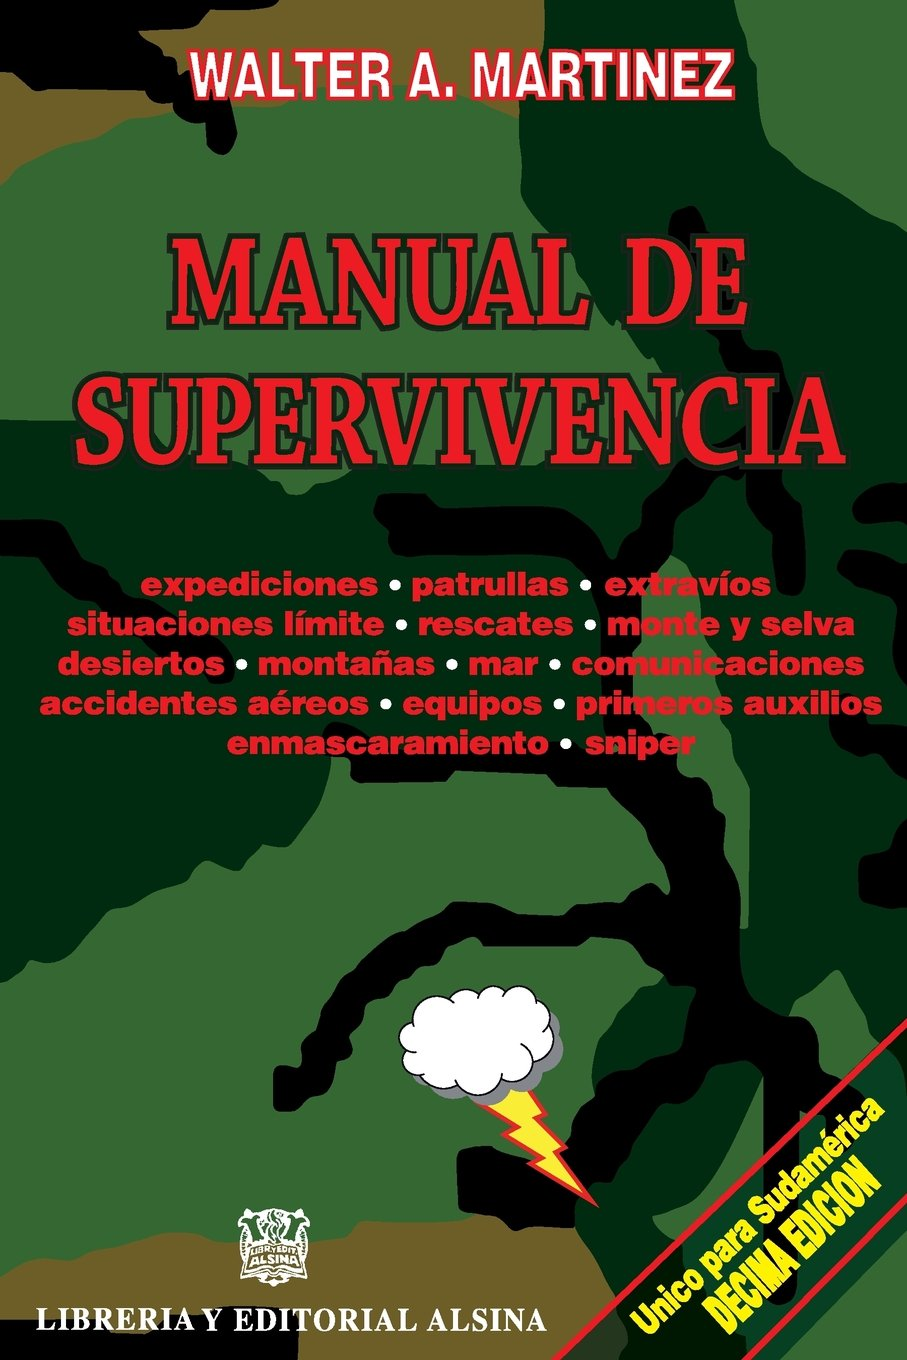 Manual de Supervivencia (Spanish Edition): Walter A. Martinez ...